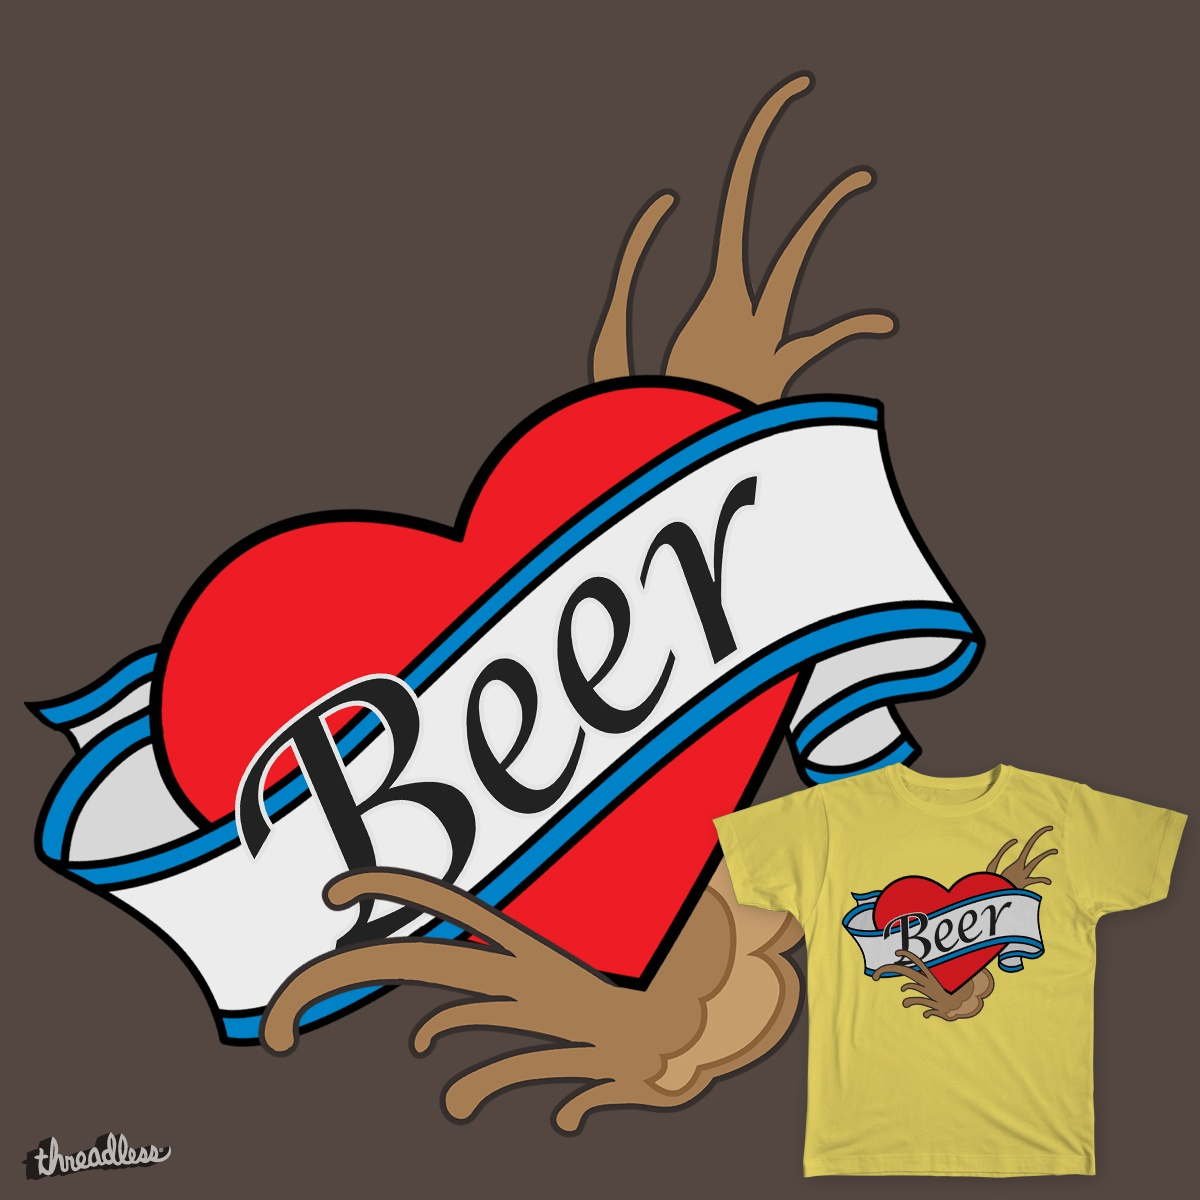 BEER BEER BEER, a cool t-shirt design